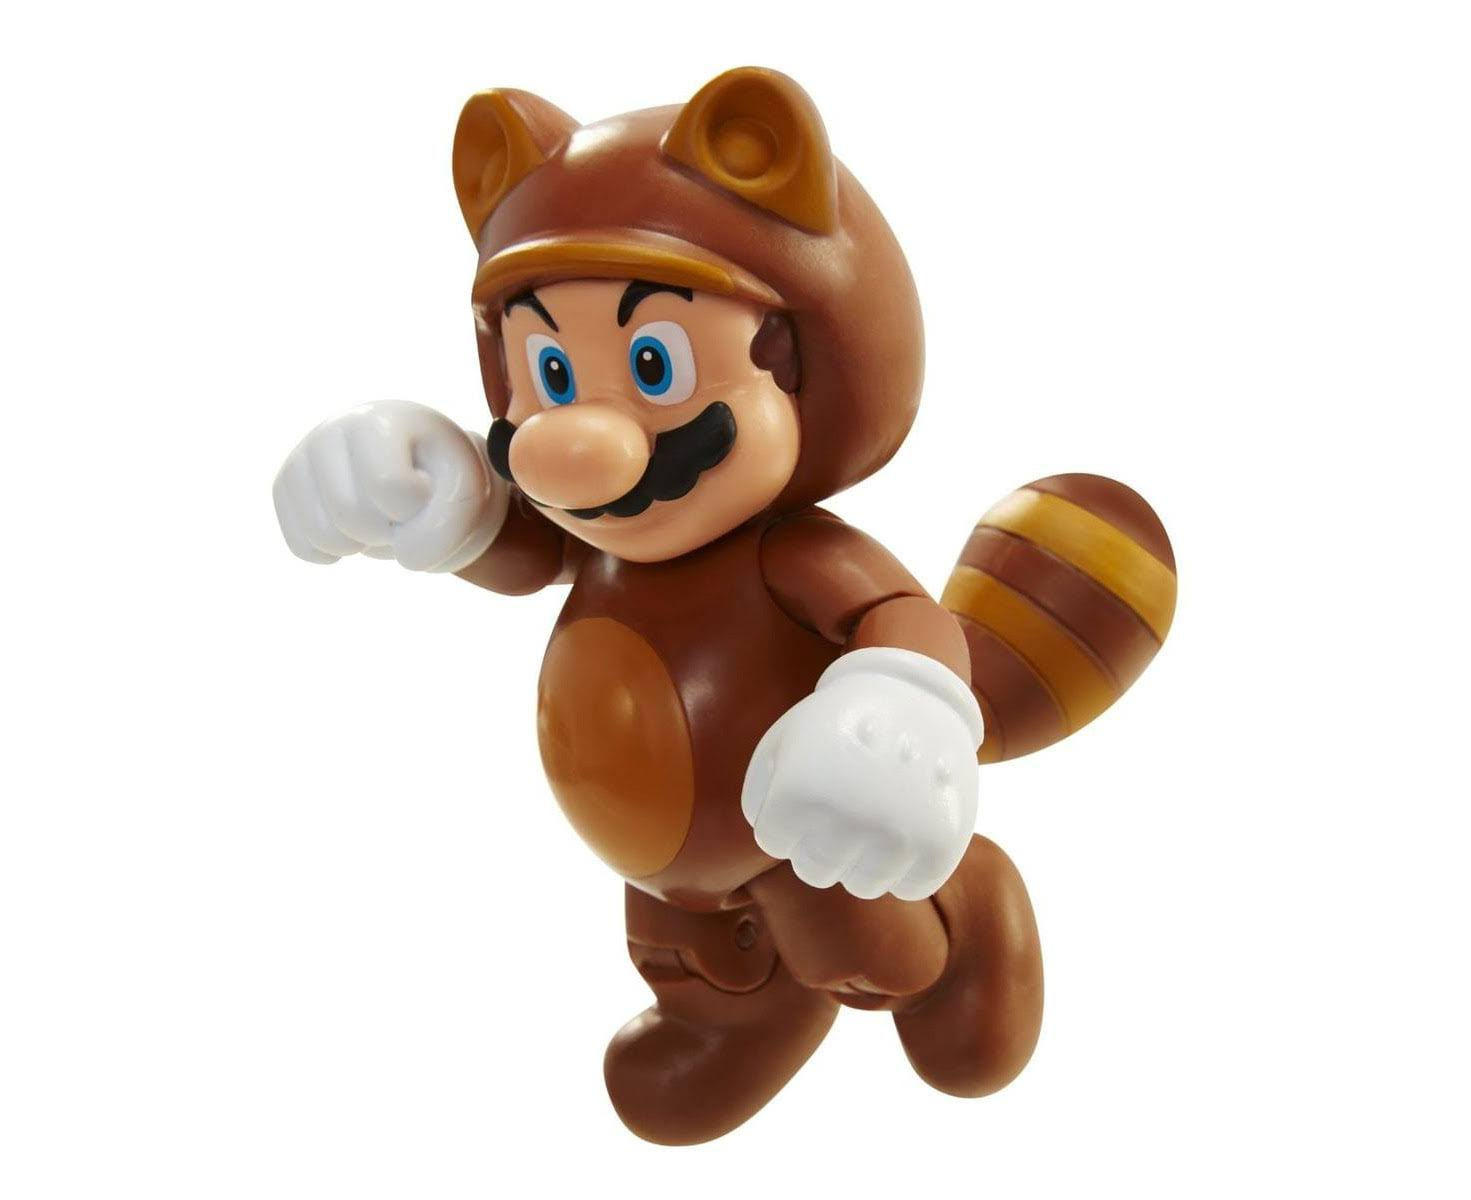 Jakks Pacific World of Nintendo Raccoon Mario with Leaf Action Figure - 4""